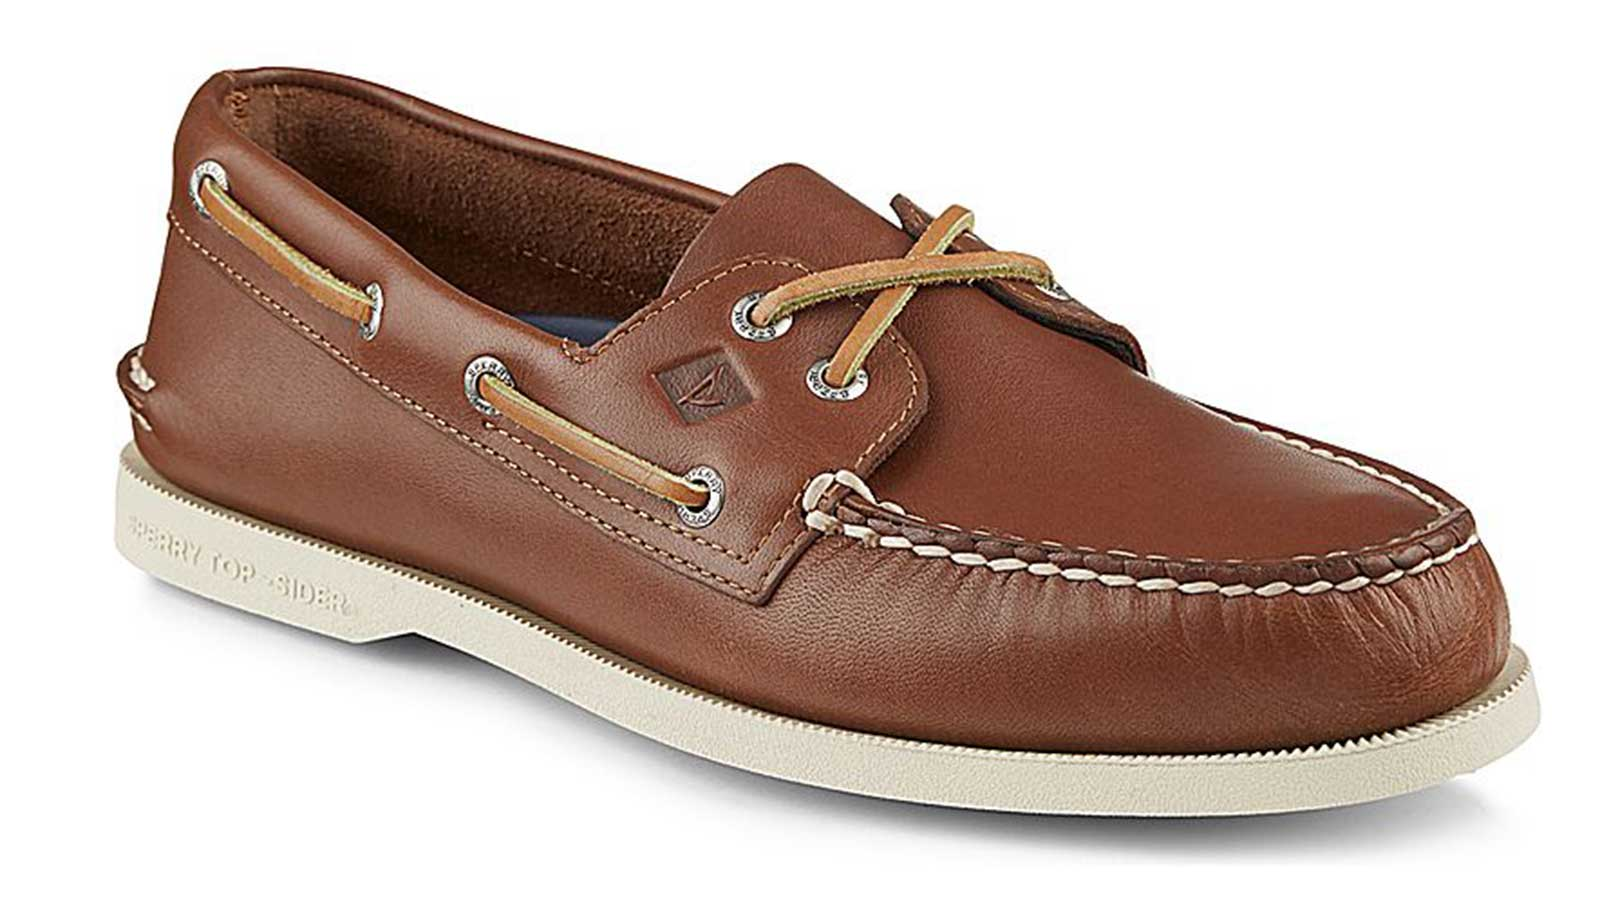 Sperry Topsider Men's Boat Shoe | best mens boat shoes